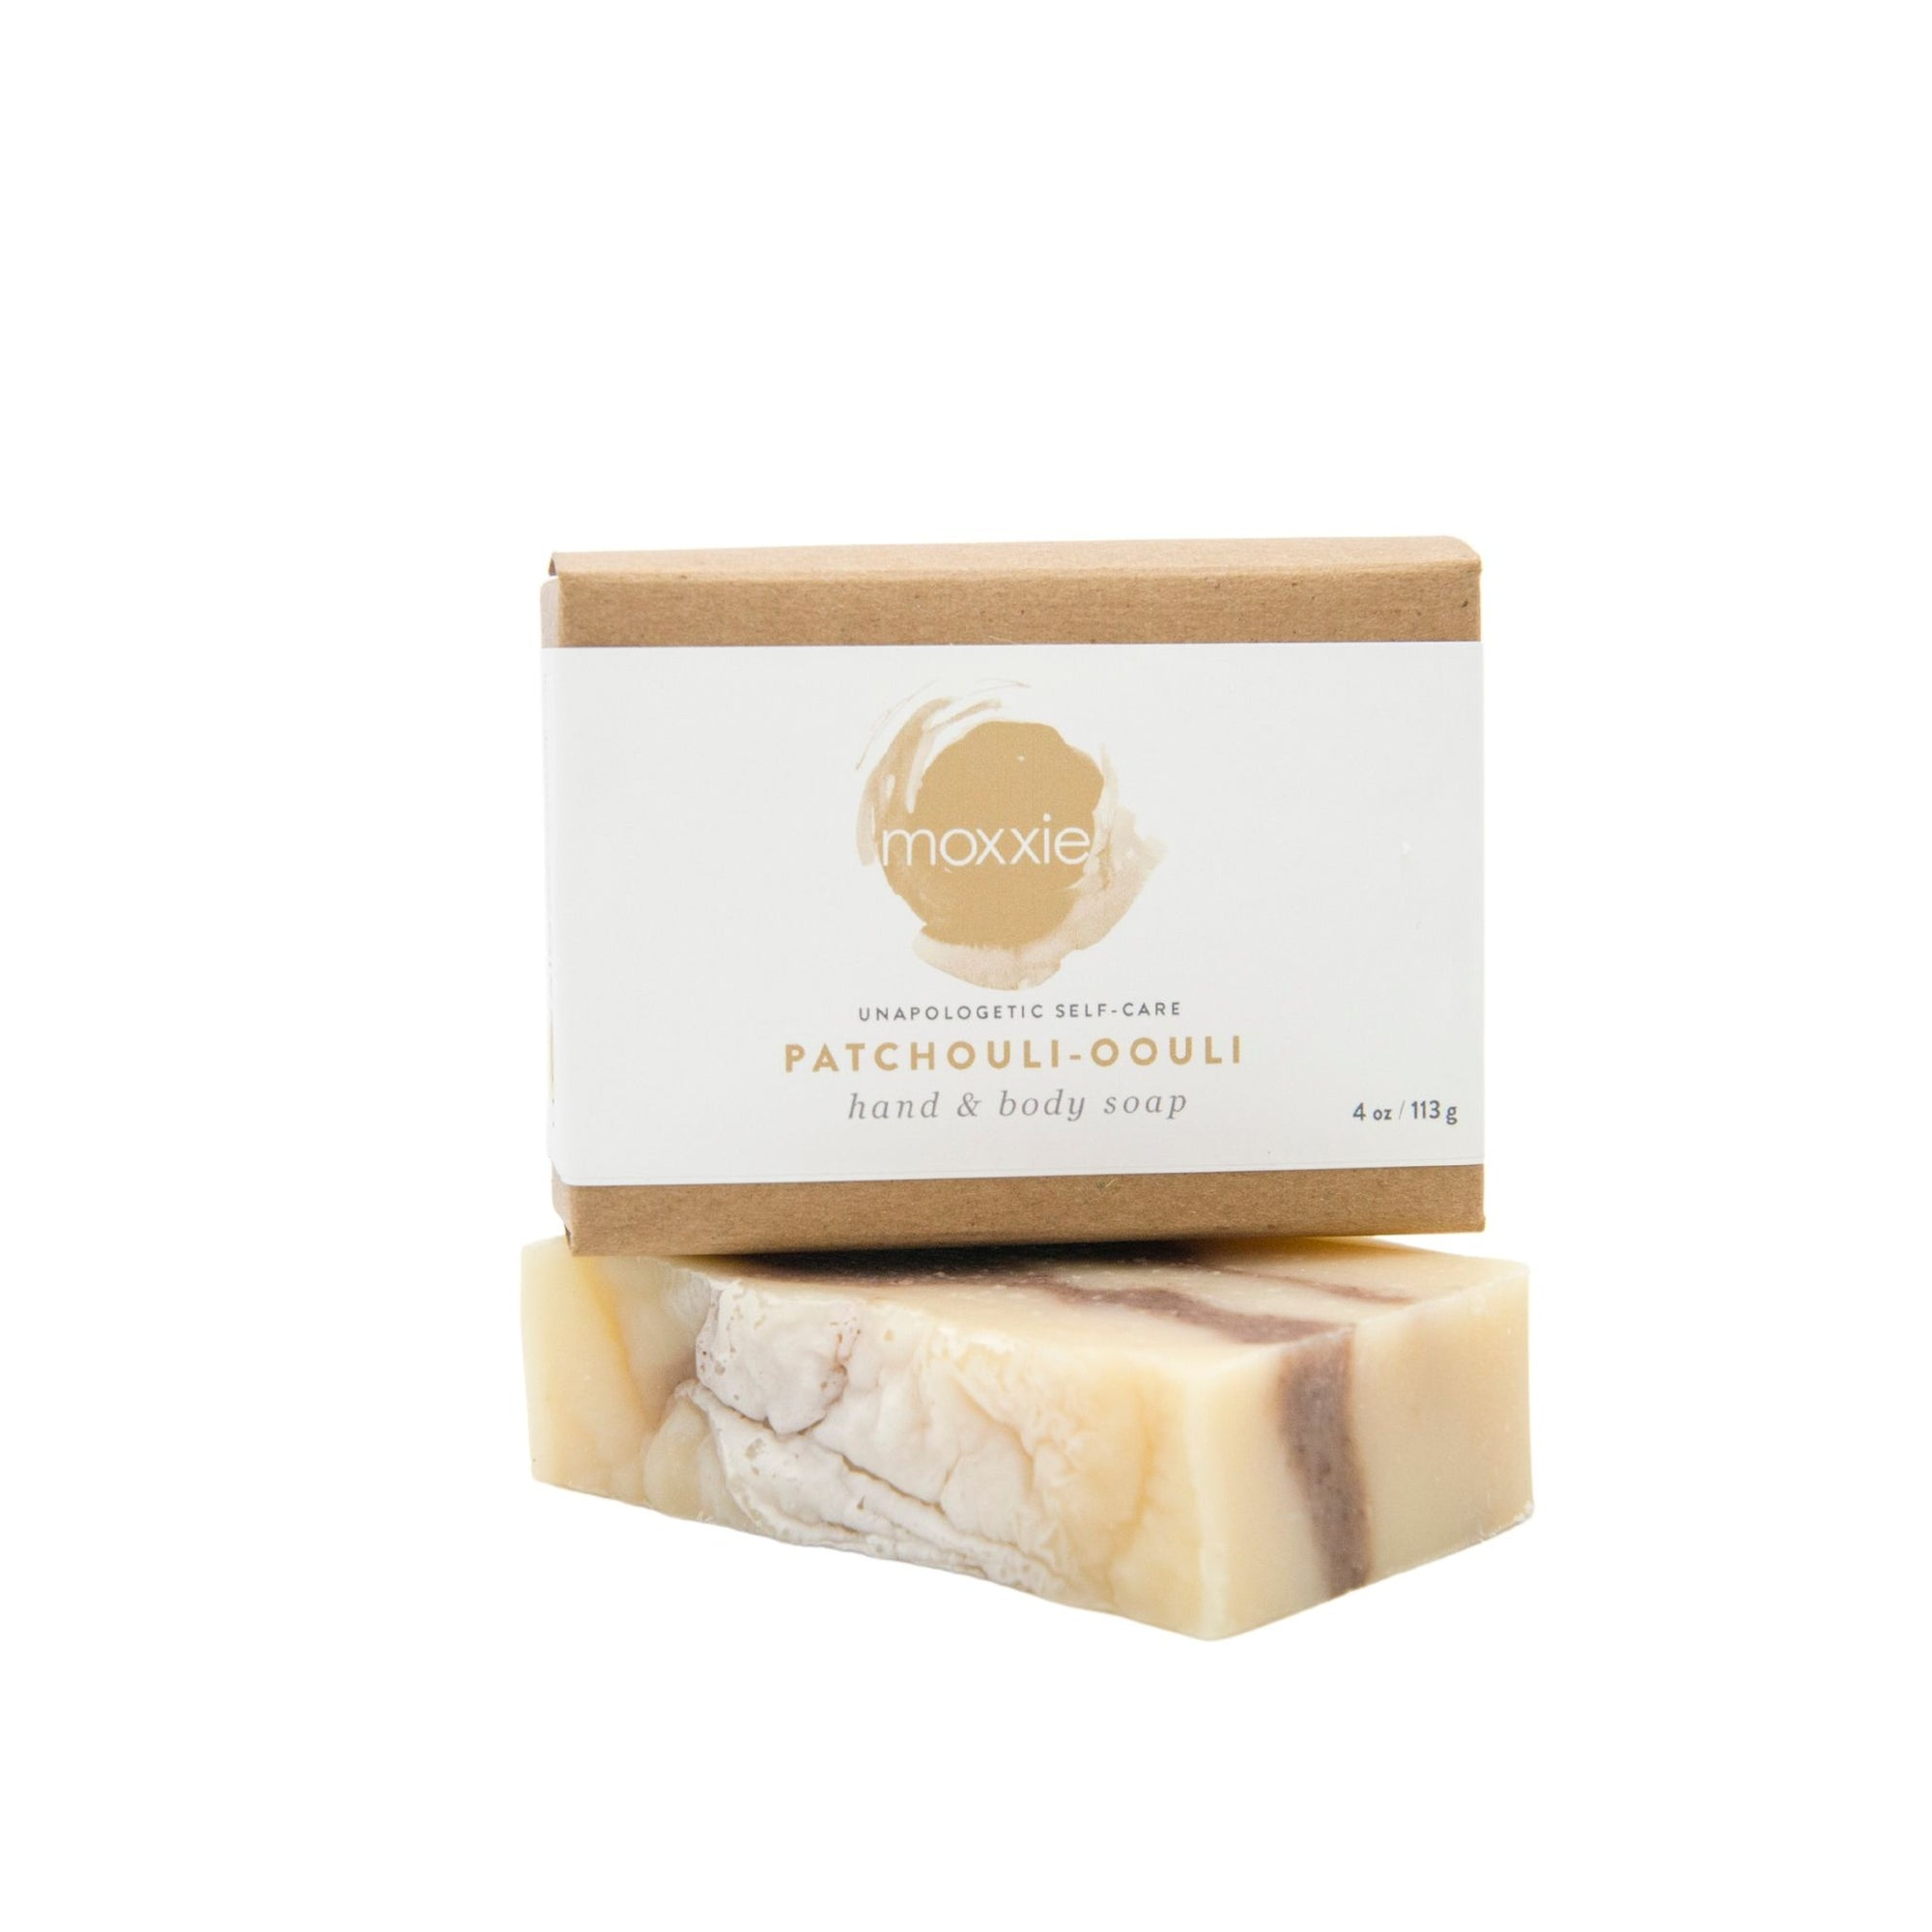 Moxxie all natural, handcrafted 100% botanical Bar Soap - patchouli